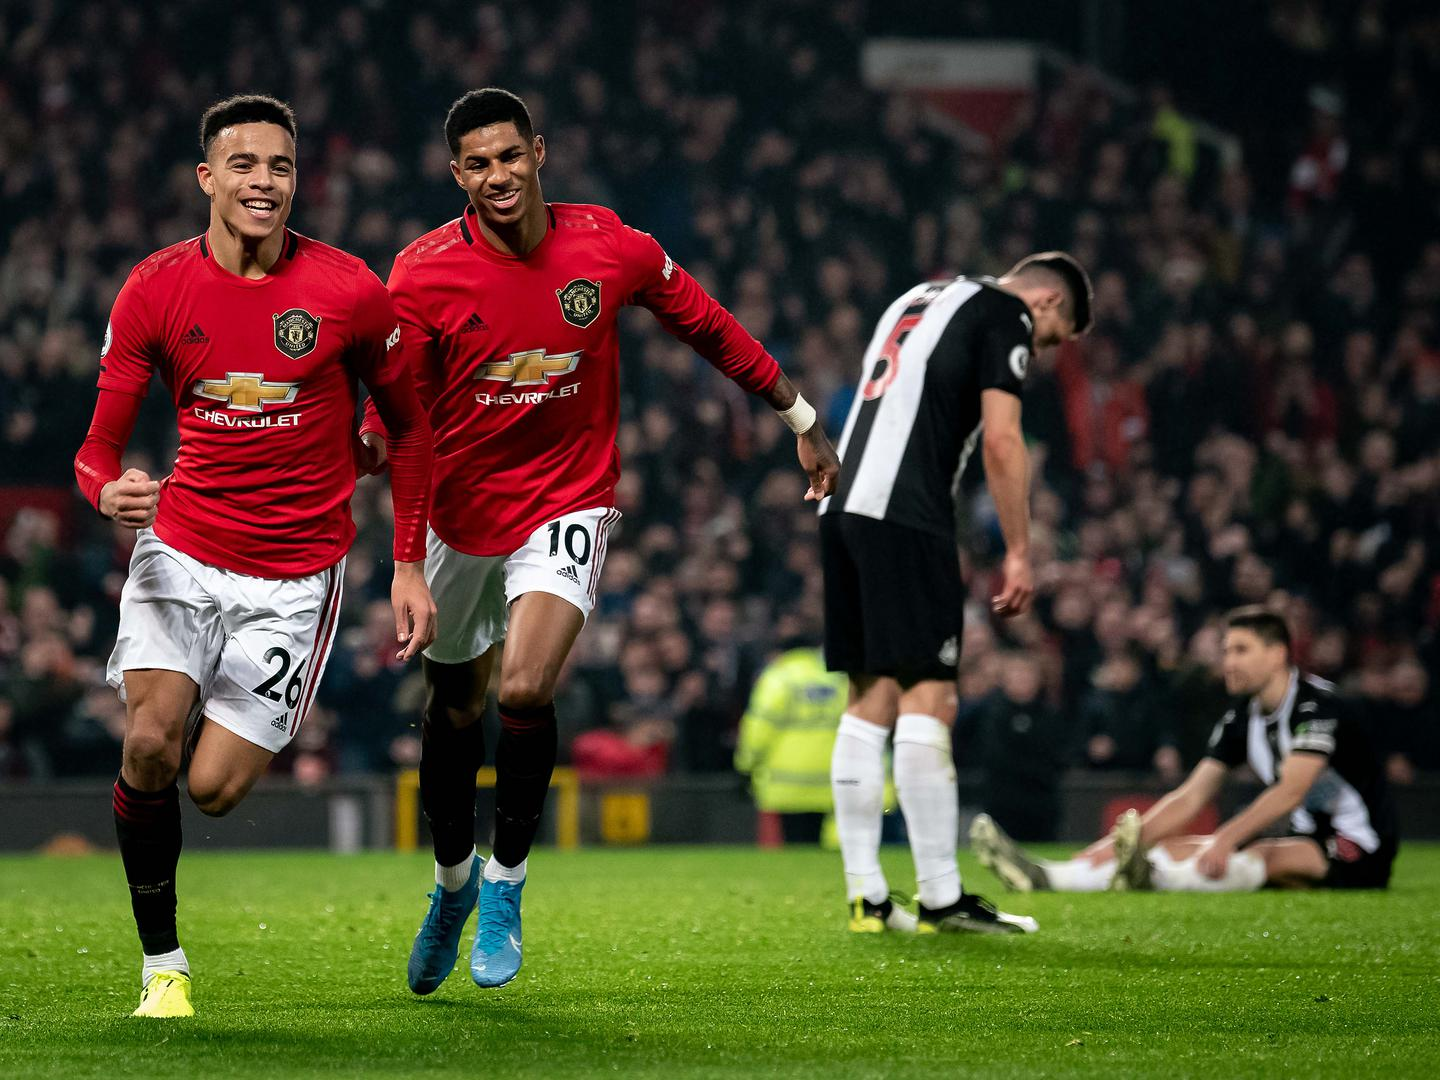 Mason Greenwood and Marcus Rashford run away in celebration